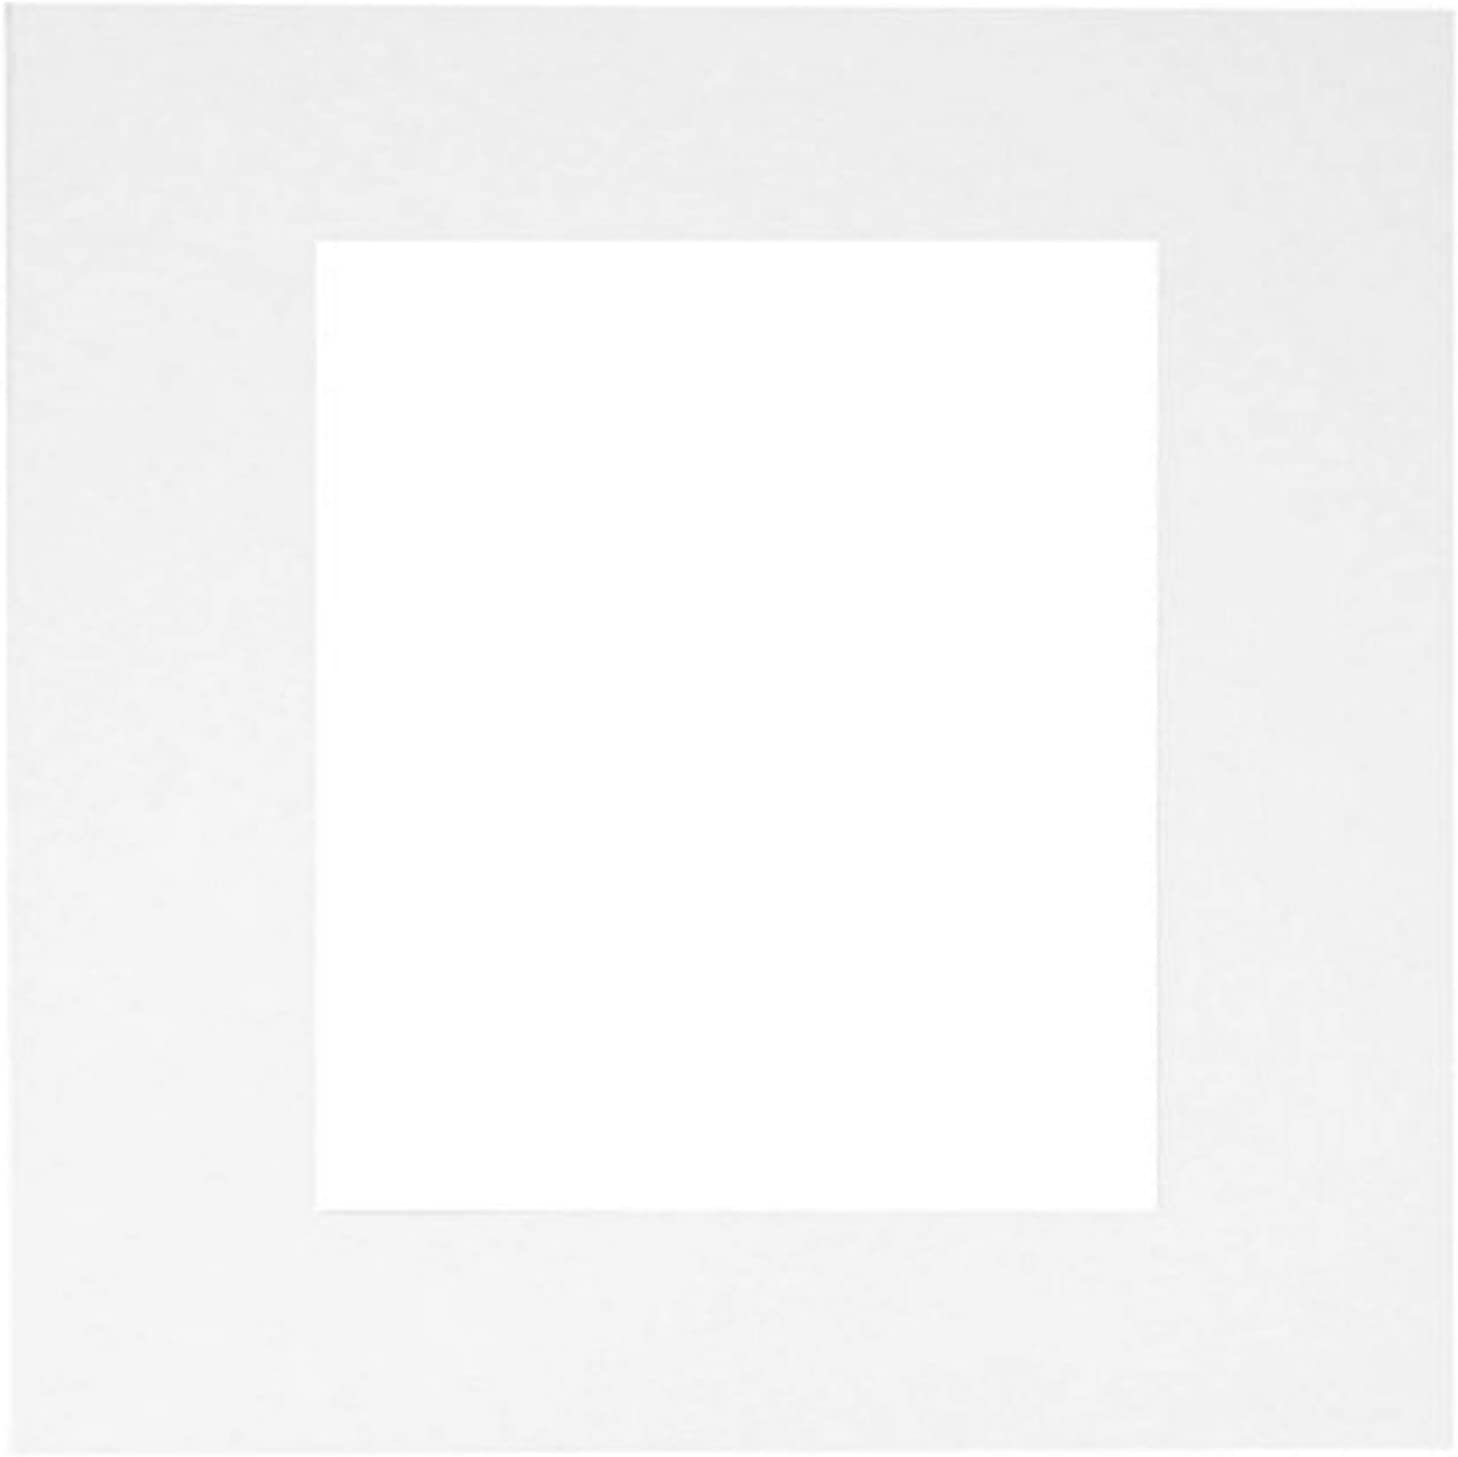 10 of 18x24 White Pre-cut Acid-free whitecore mat, fits 12x18 + back 51gpxceVqKLSL1500_